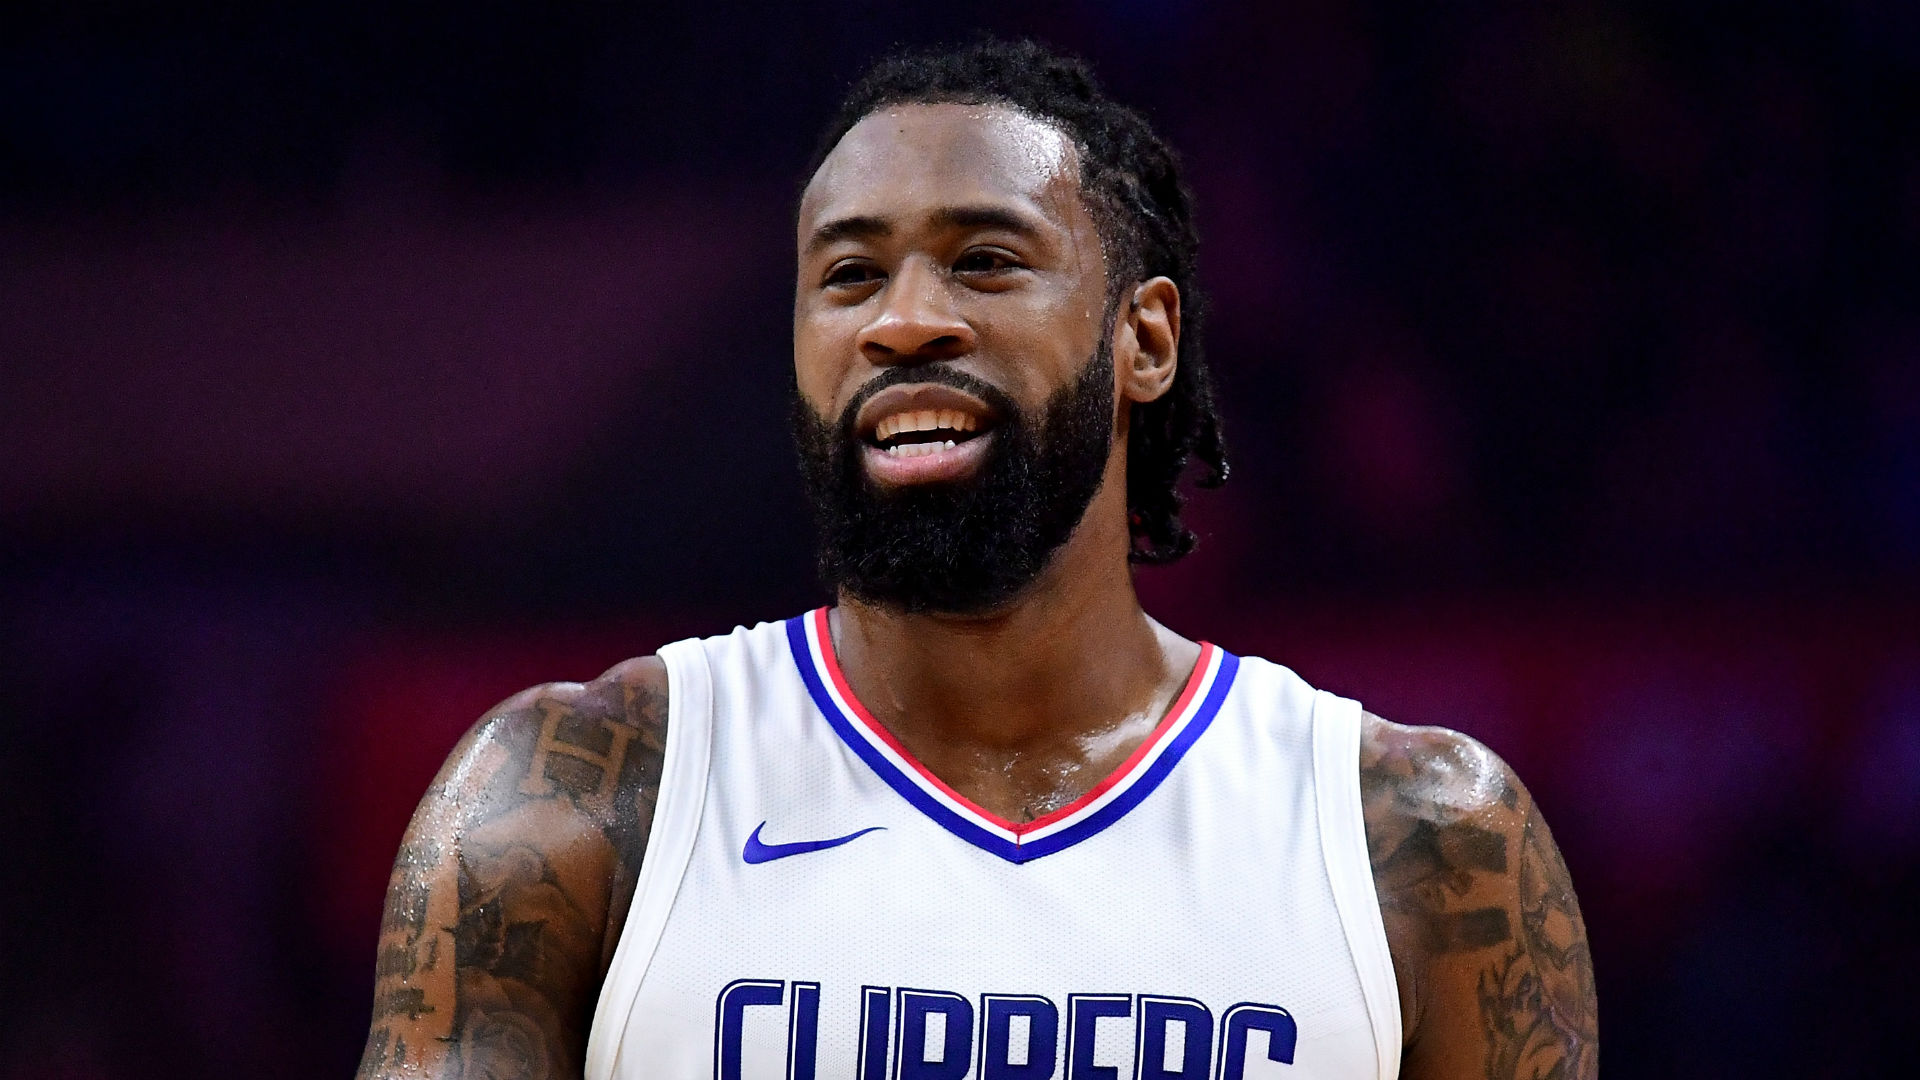 DeAndre Jordan, Mavericks Reportedly Verbally Agree to 1-Year, $24M Contract